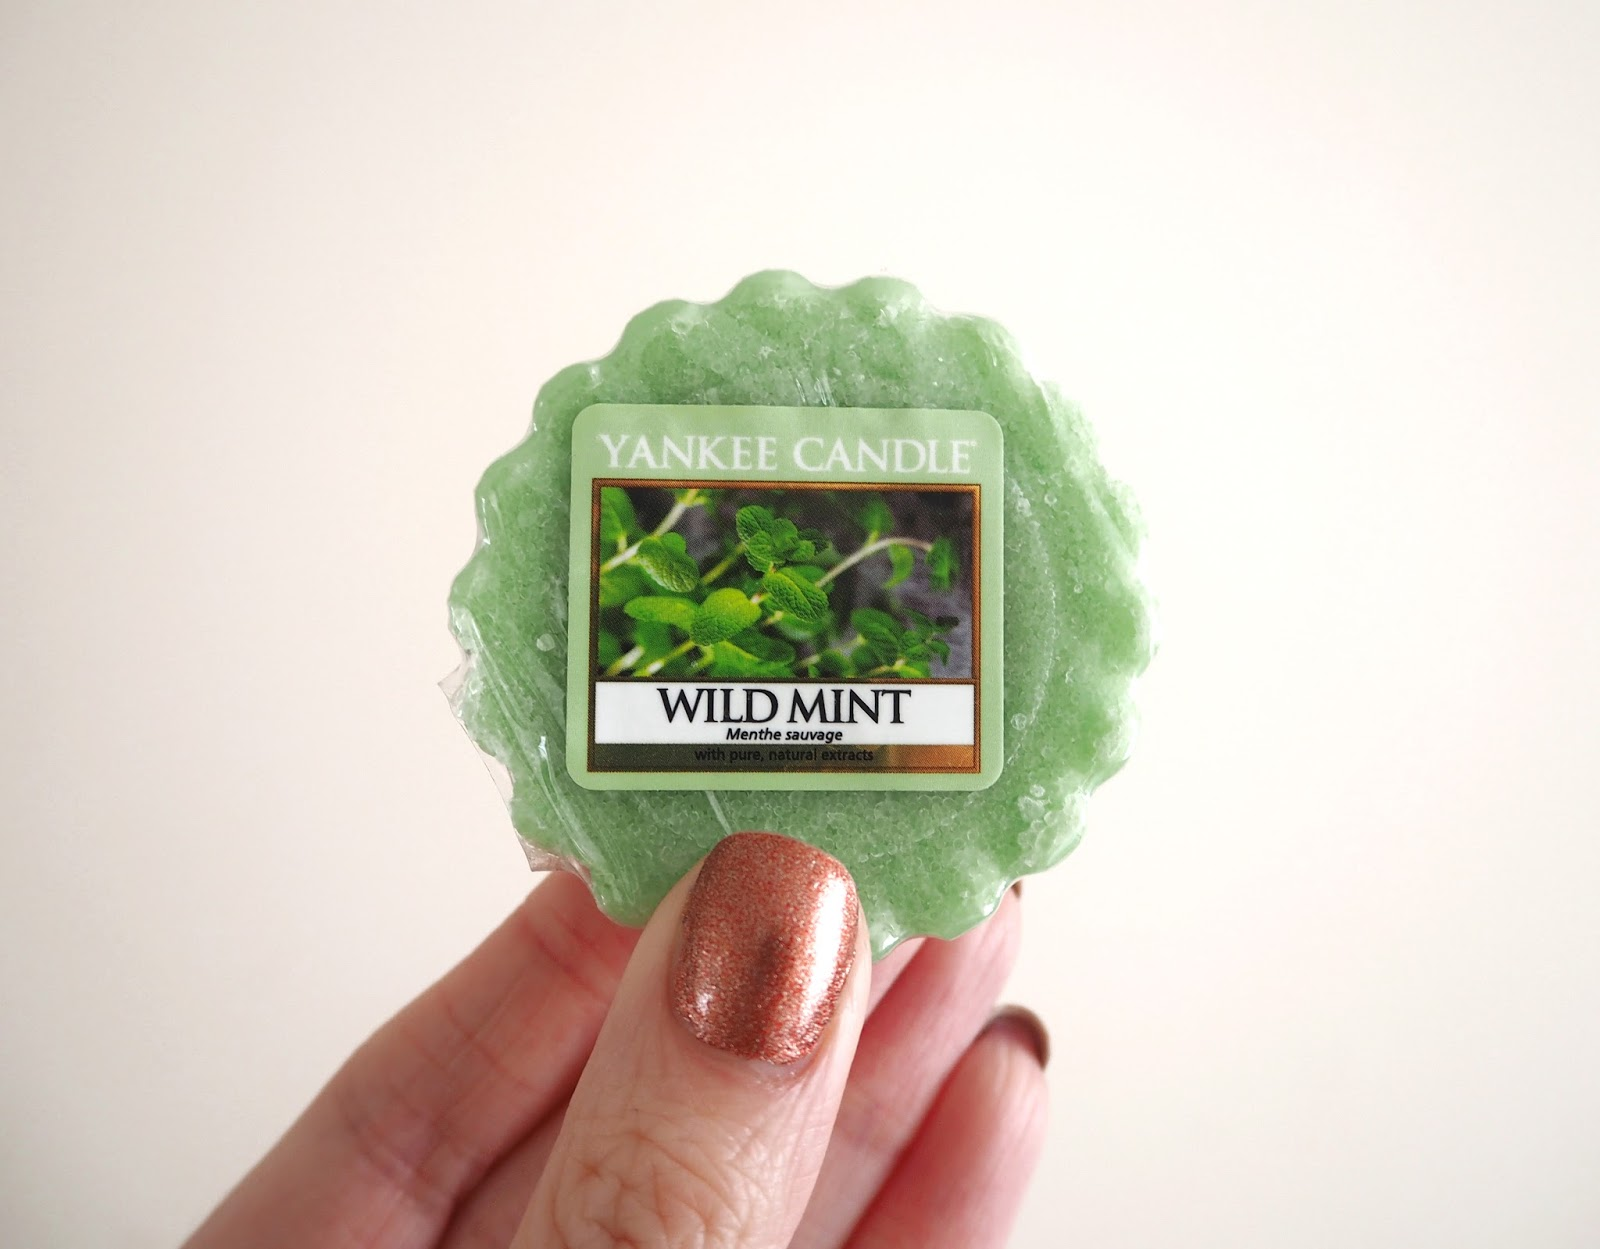 Yankee Candle Pure Essence Collection Review, Wild Mint, Fragrance Review, Candle Review, Yankee Candles, UK Blogger, Lifestyle Blogger, Katie Kirk Loves